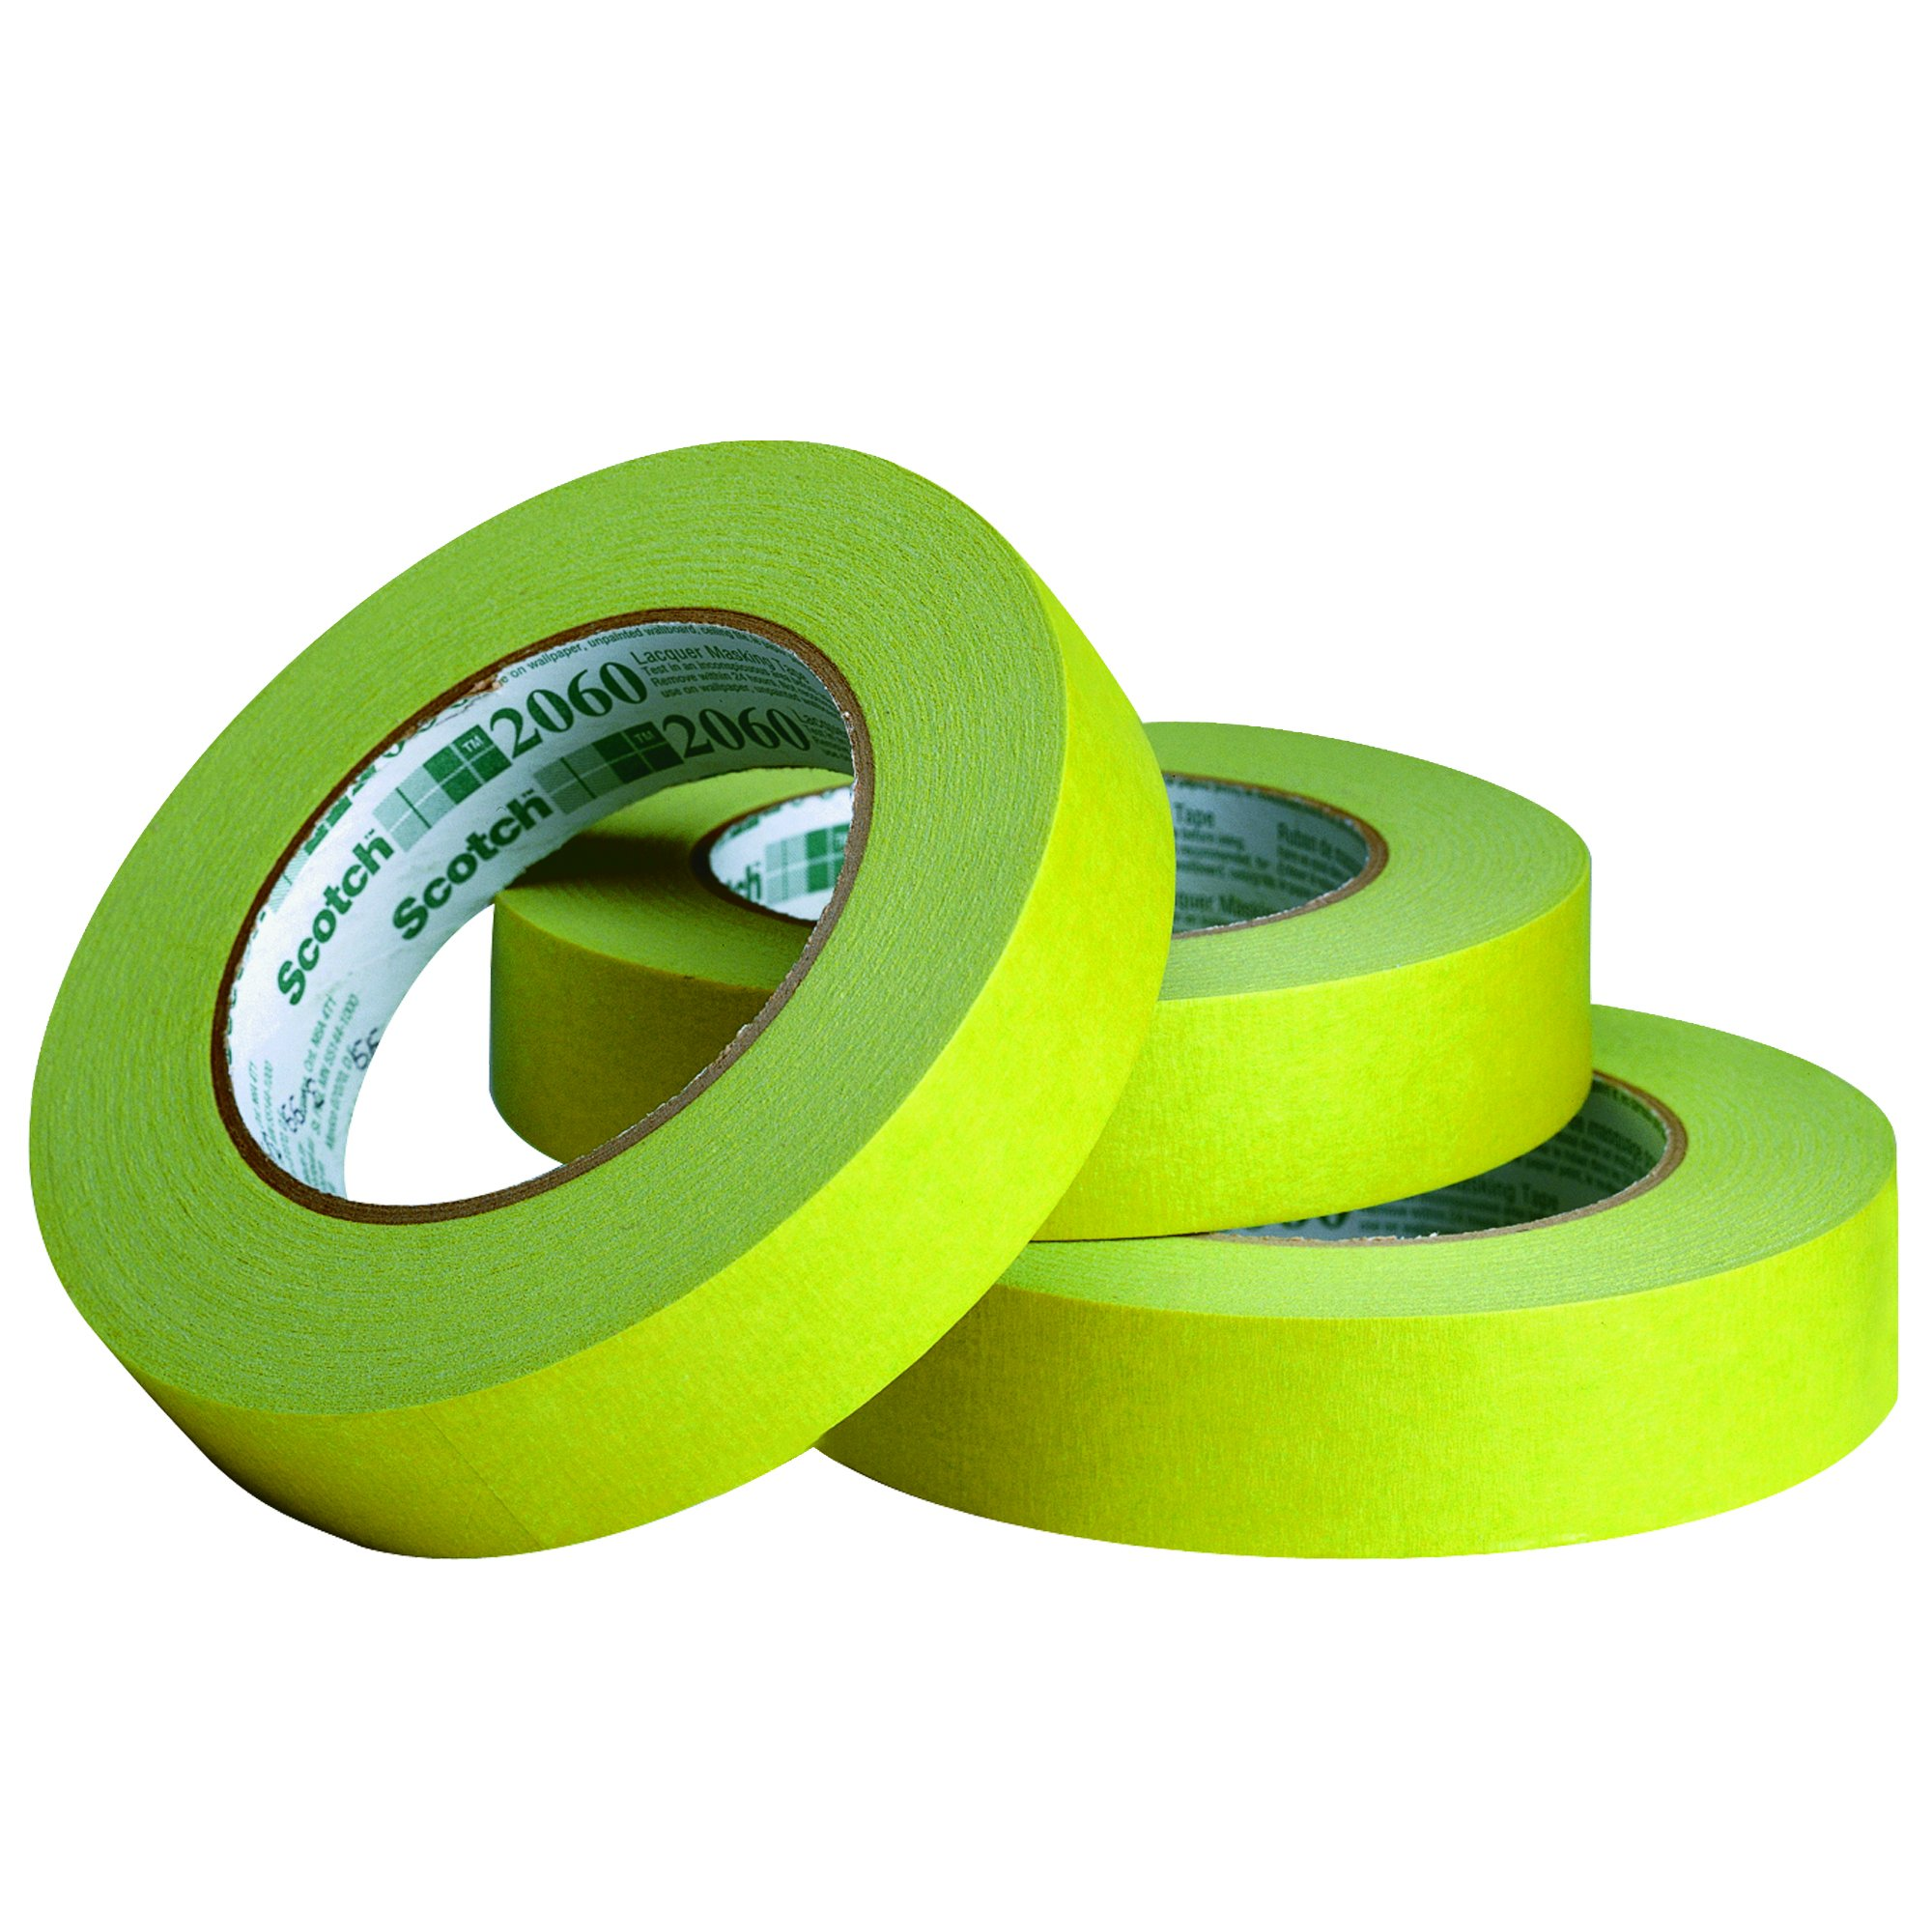 BOX BT934206012PK 3M 2060 Masking Tape, 3/4'' x 60 yd, Green (Pack of 12)